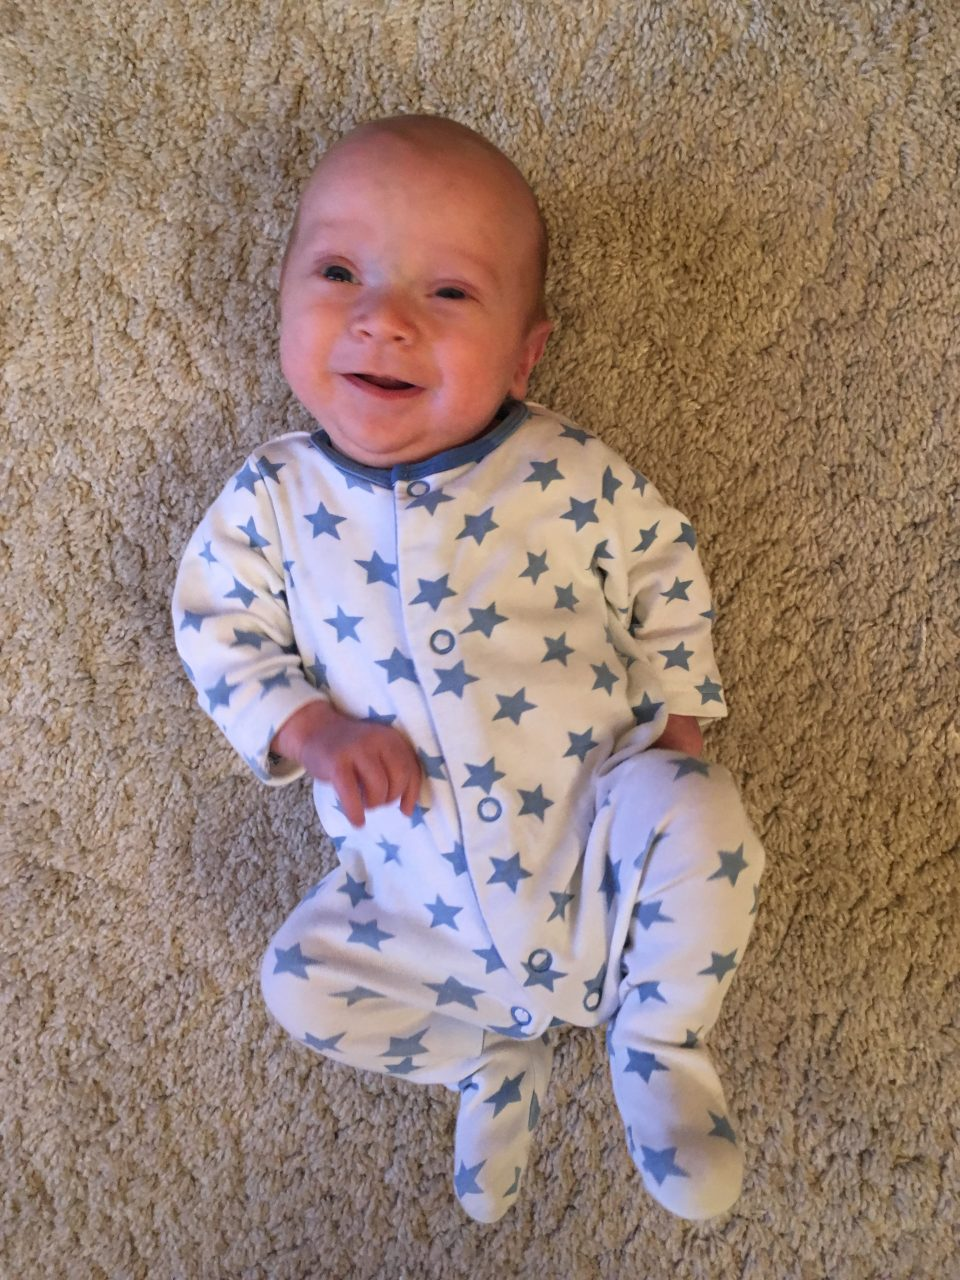 William looking bigger and starting to smile